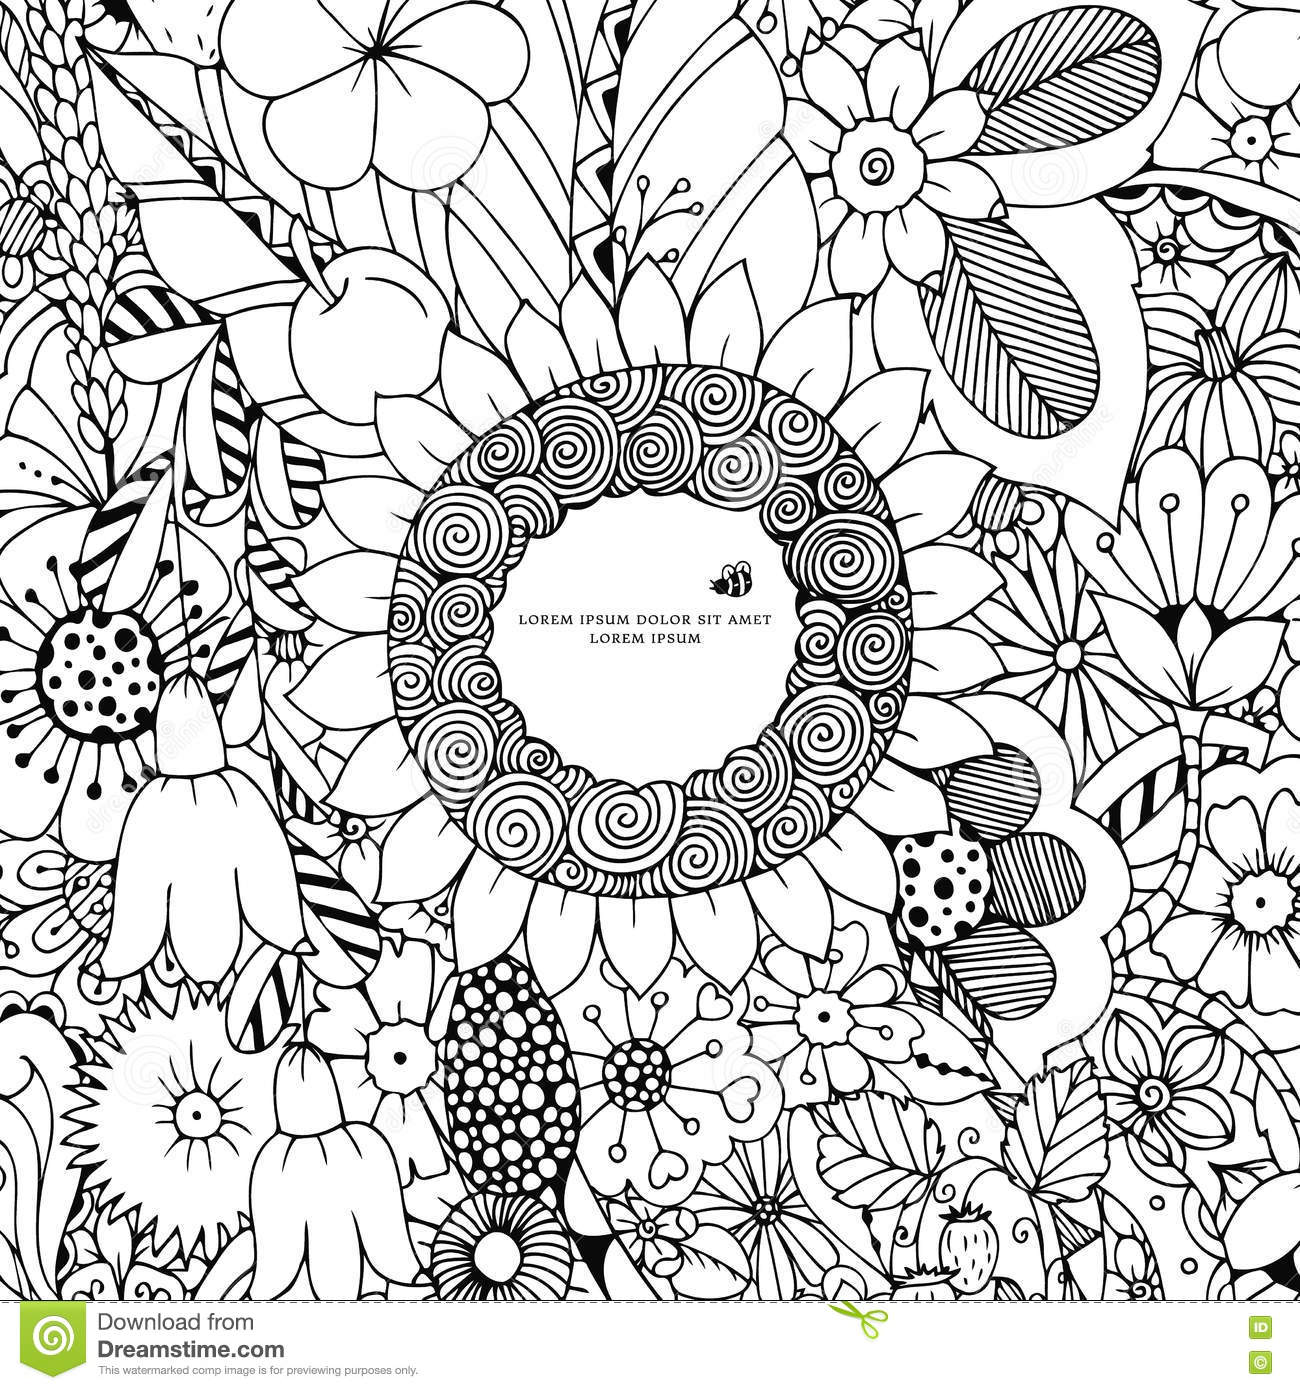 Vector Illustration Of Floral Frame Zen Tangle Dudlart Coloring Book Anti Stress For Adults Page Black And White